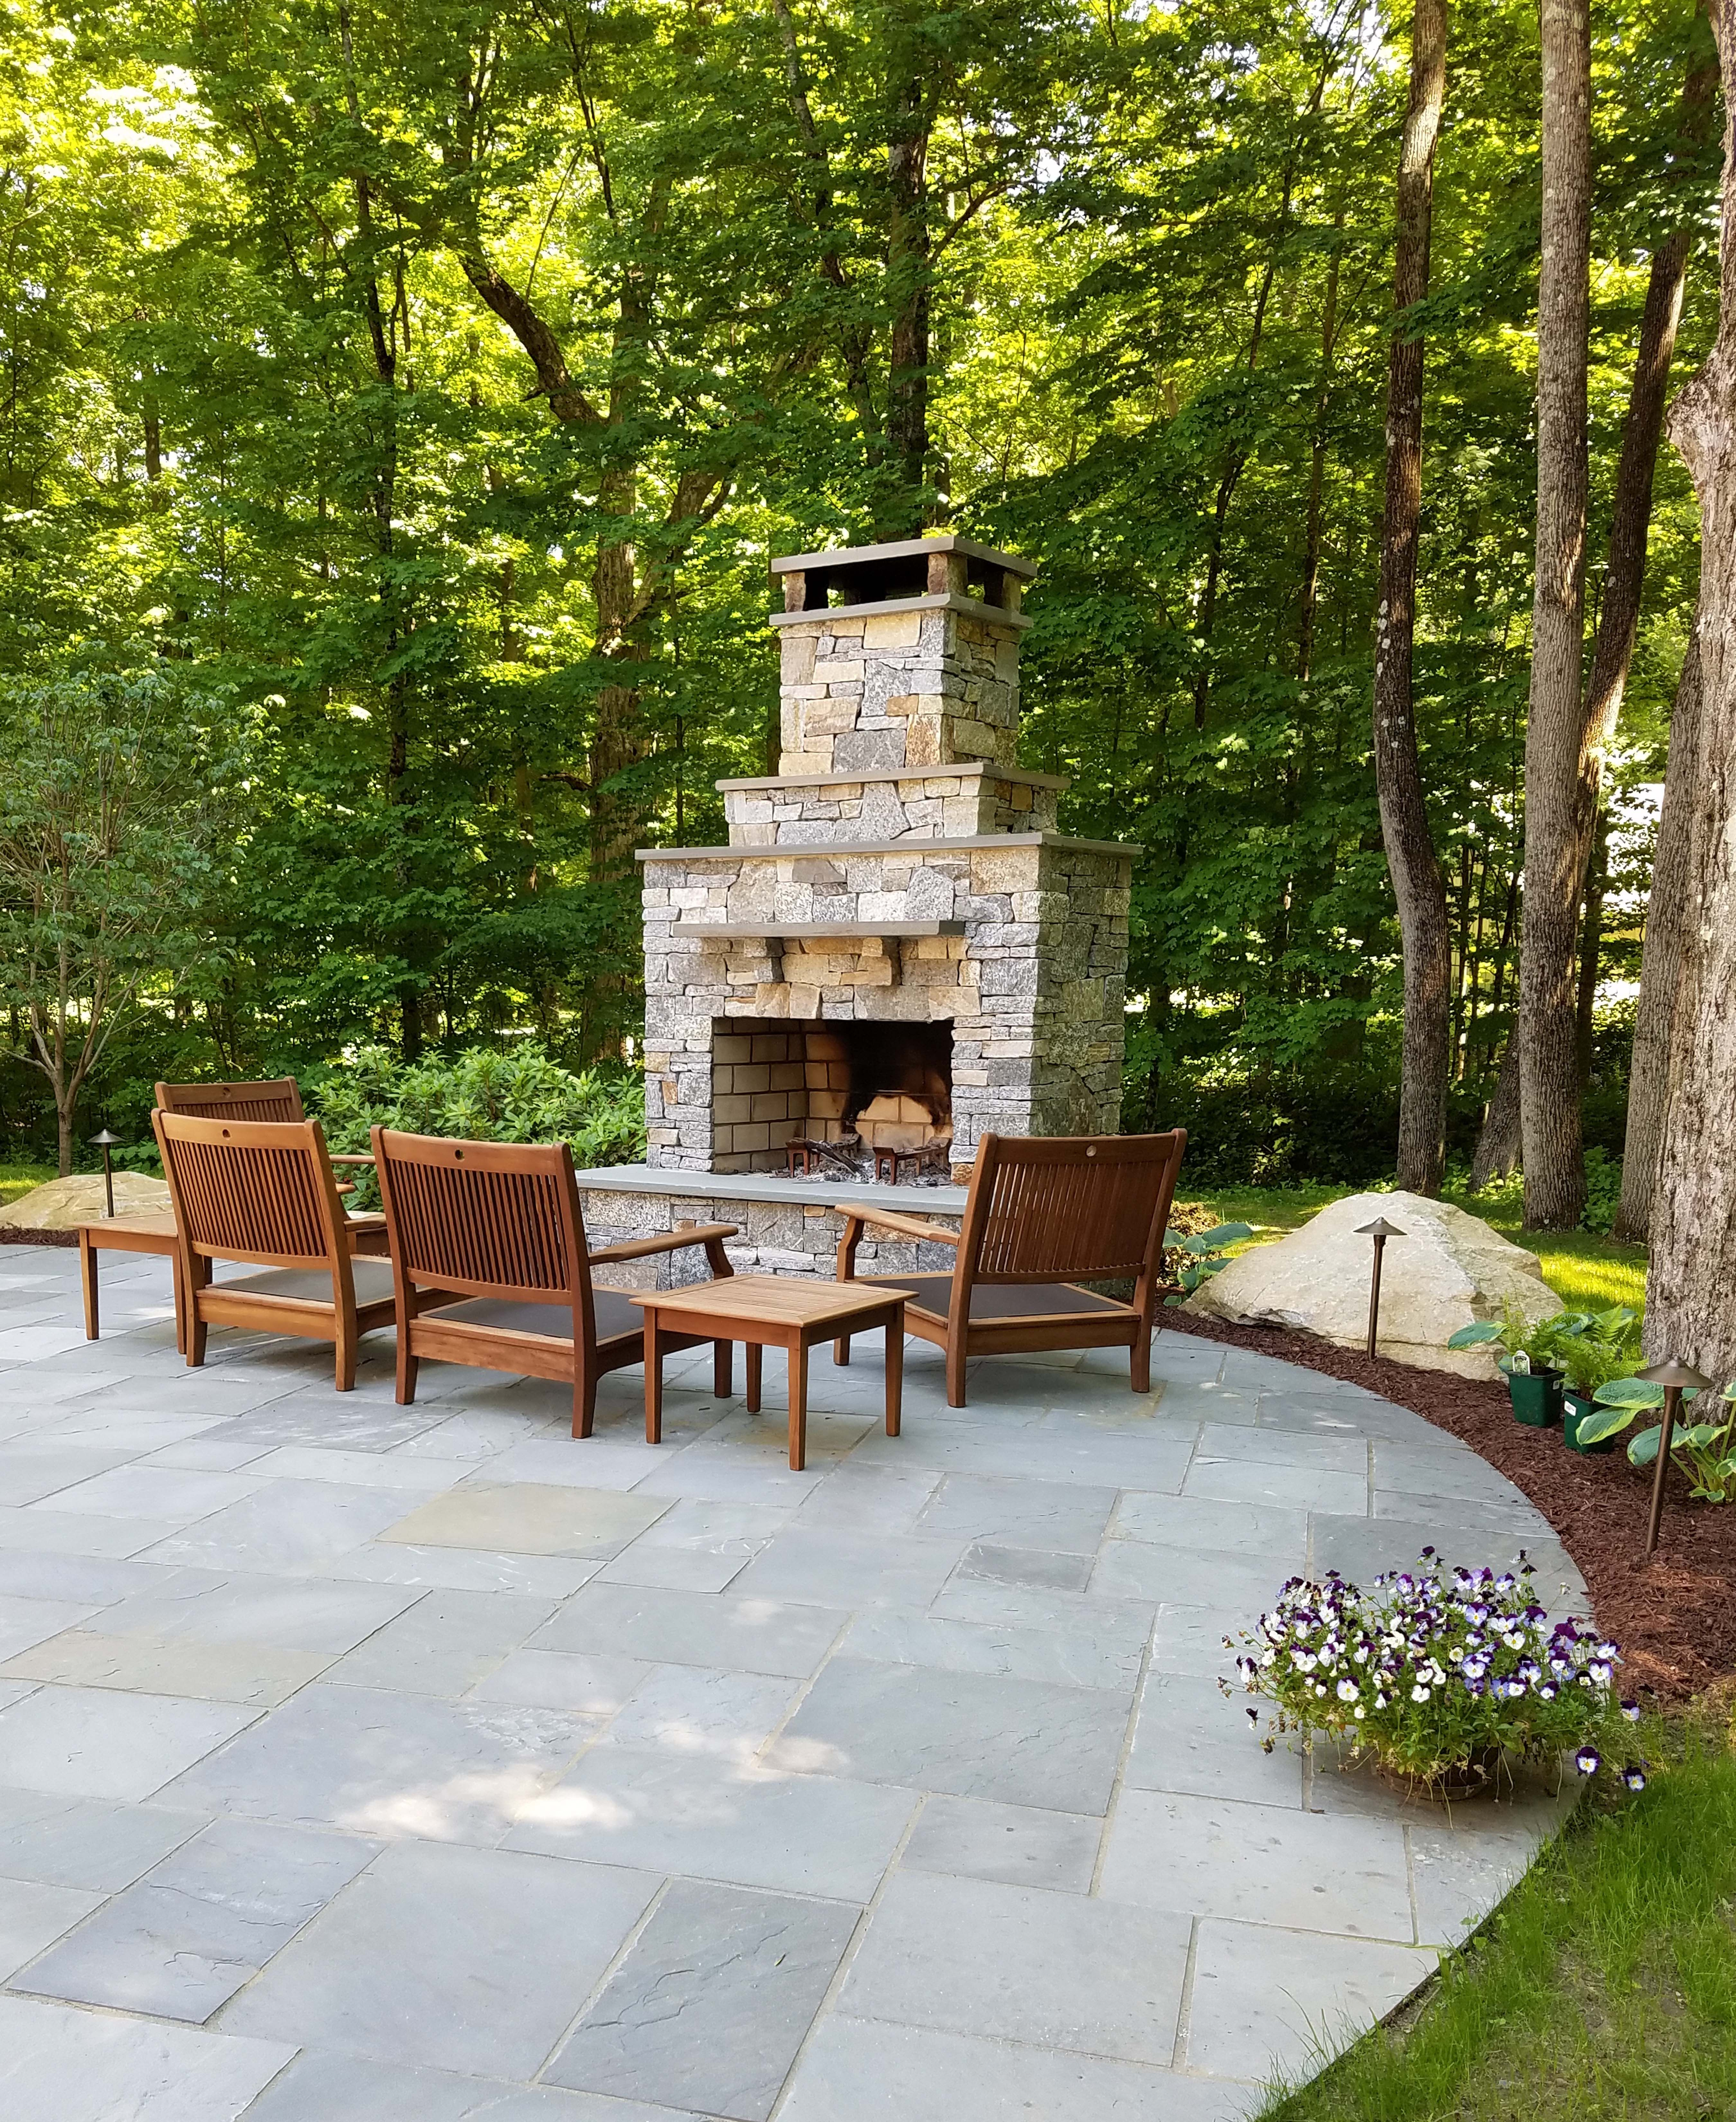 05568da9995f27c48ff28029667dbd2d Top Result 50 Awesome Outdoor Fire Features Gallery 2018 Jdt4